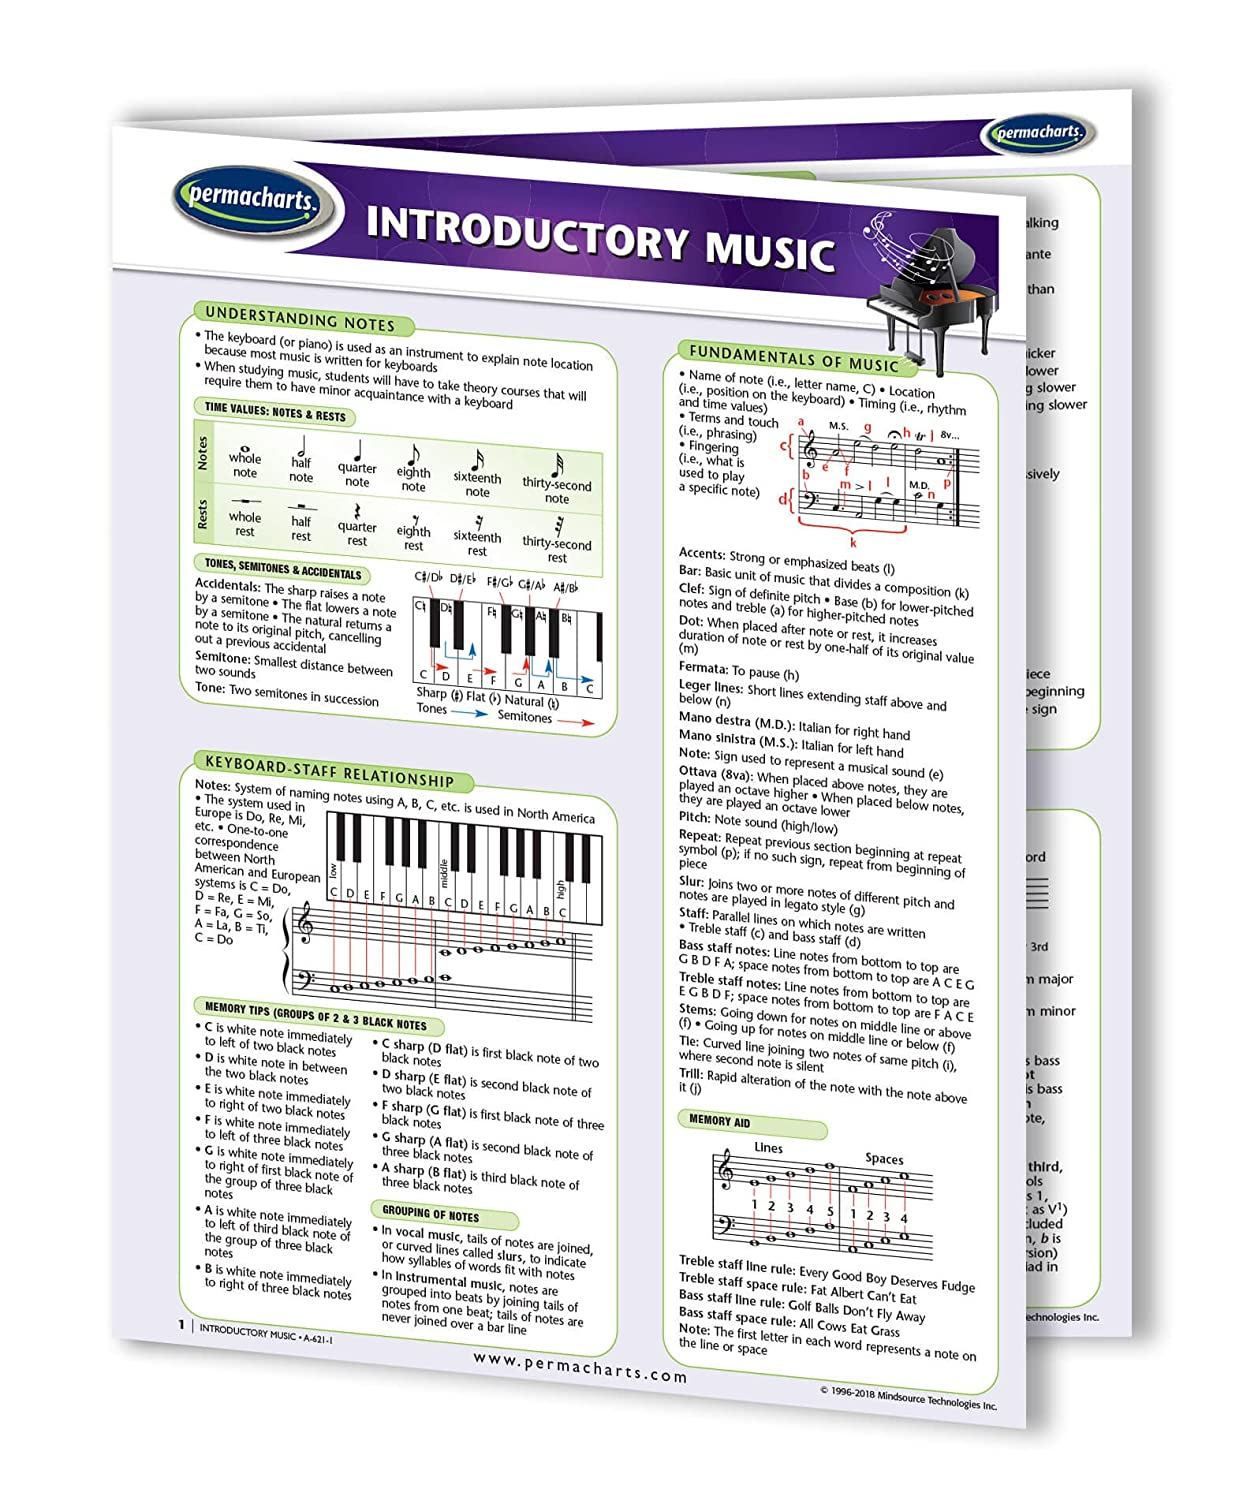 Cultural Arts Quick Reference Guide by Permacharts Introductory Music Guide